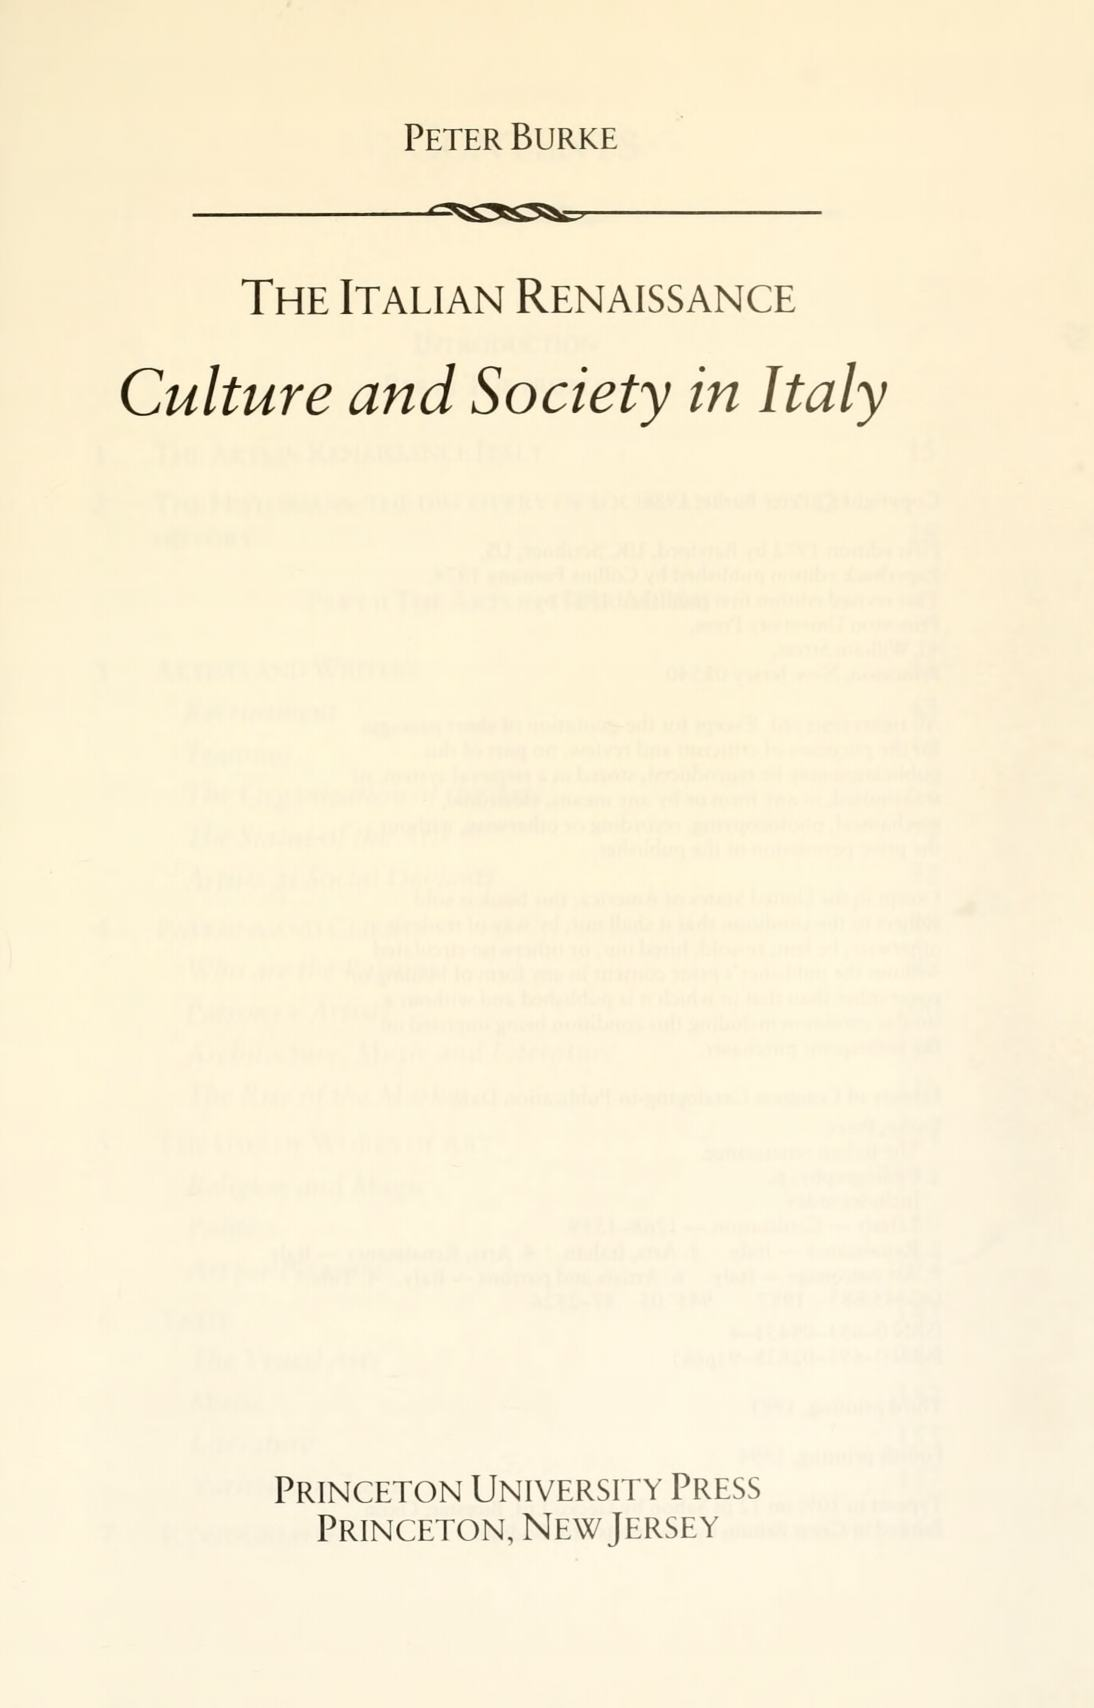 The Italian Renaissance : Culture and Society in Italy / Peter Burke. — Revised edition. — Princeton, New Jersey : Princeton University Press, 1987